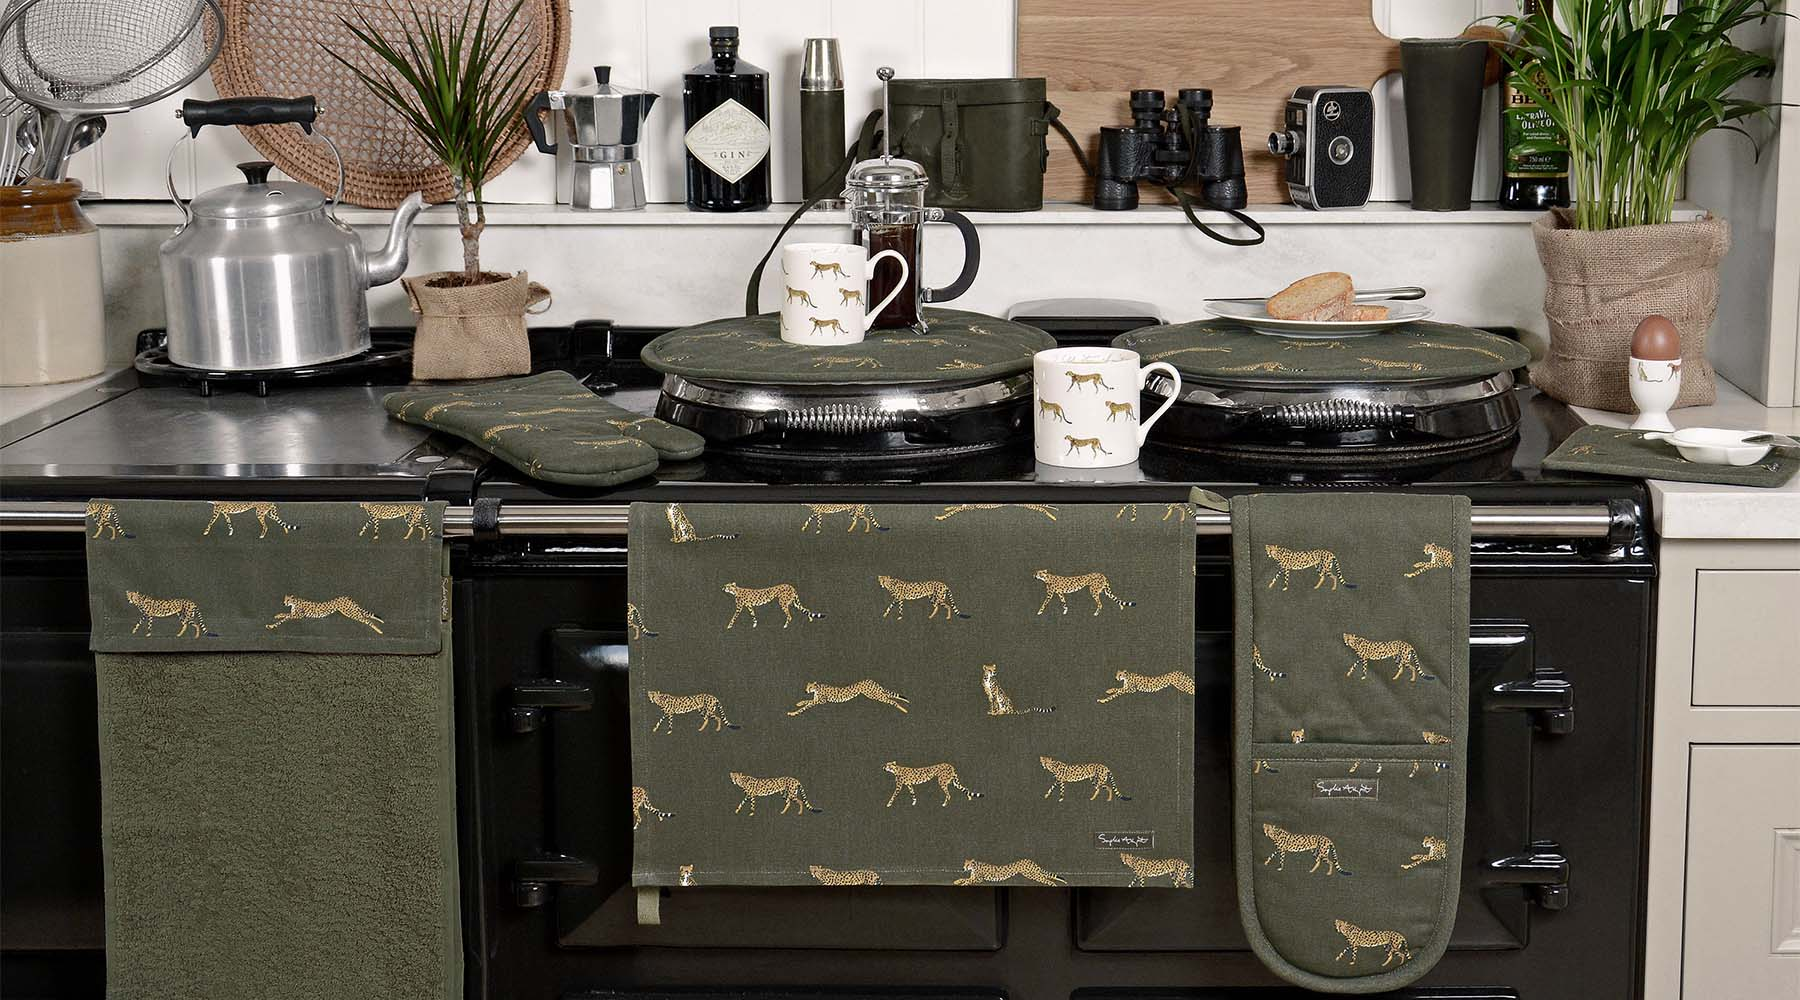 Cheetah print on homewares & accessories designed by Sophie Allport